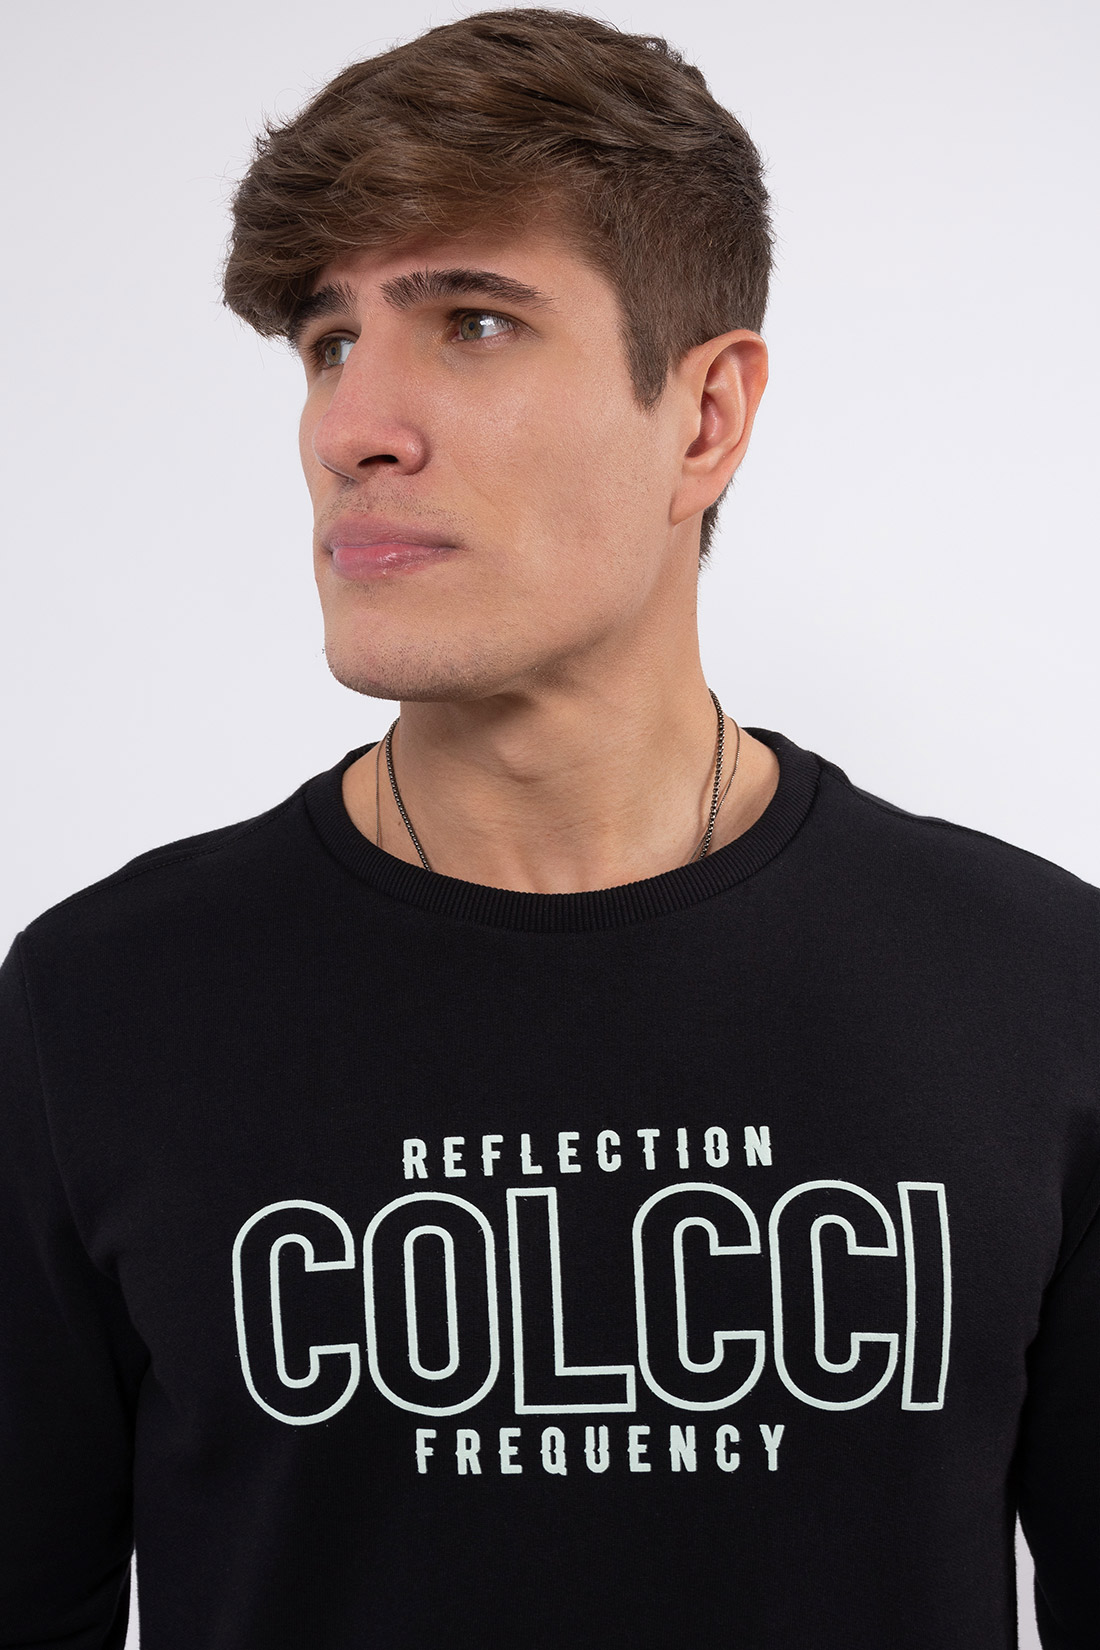 Moletom Colcci Reflection Frequency